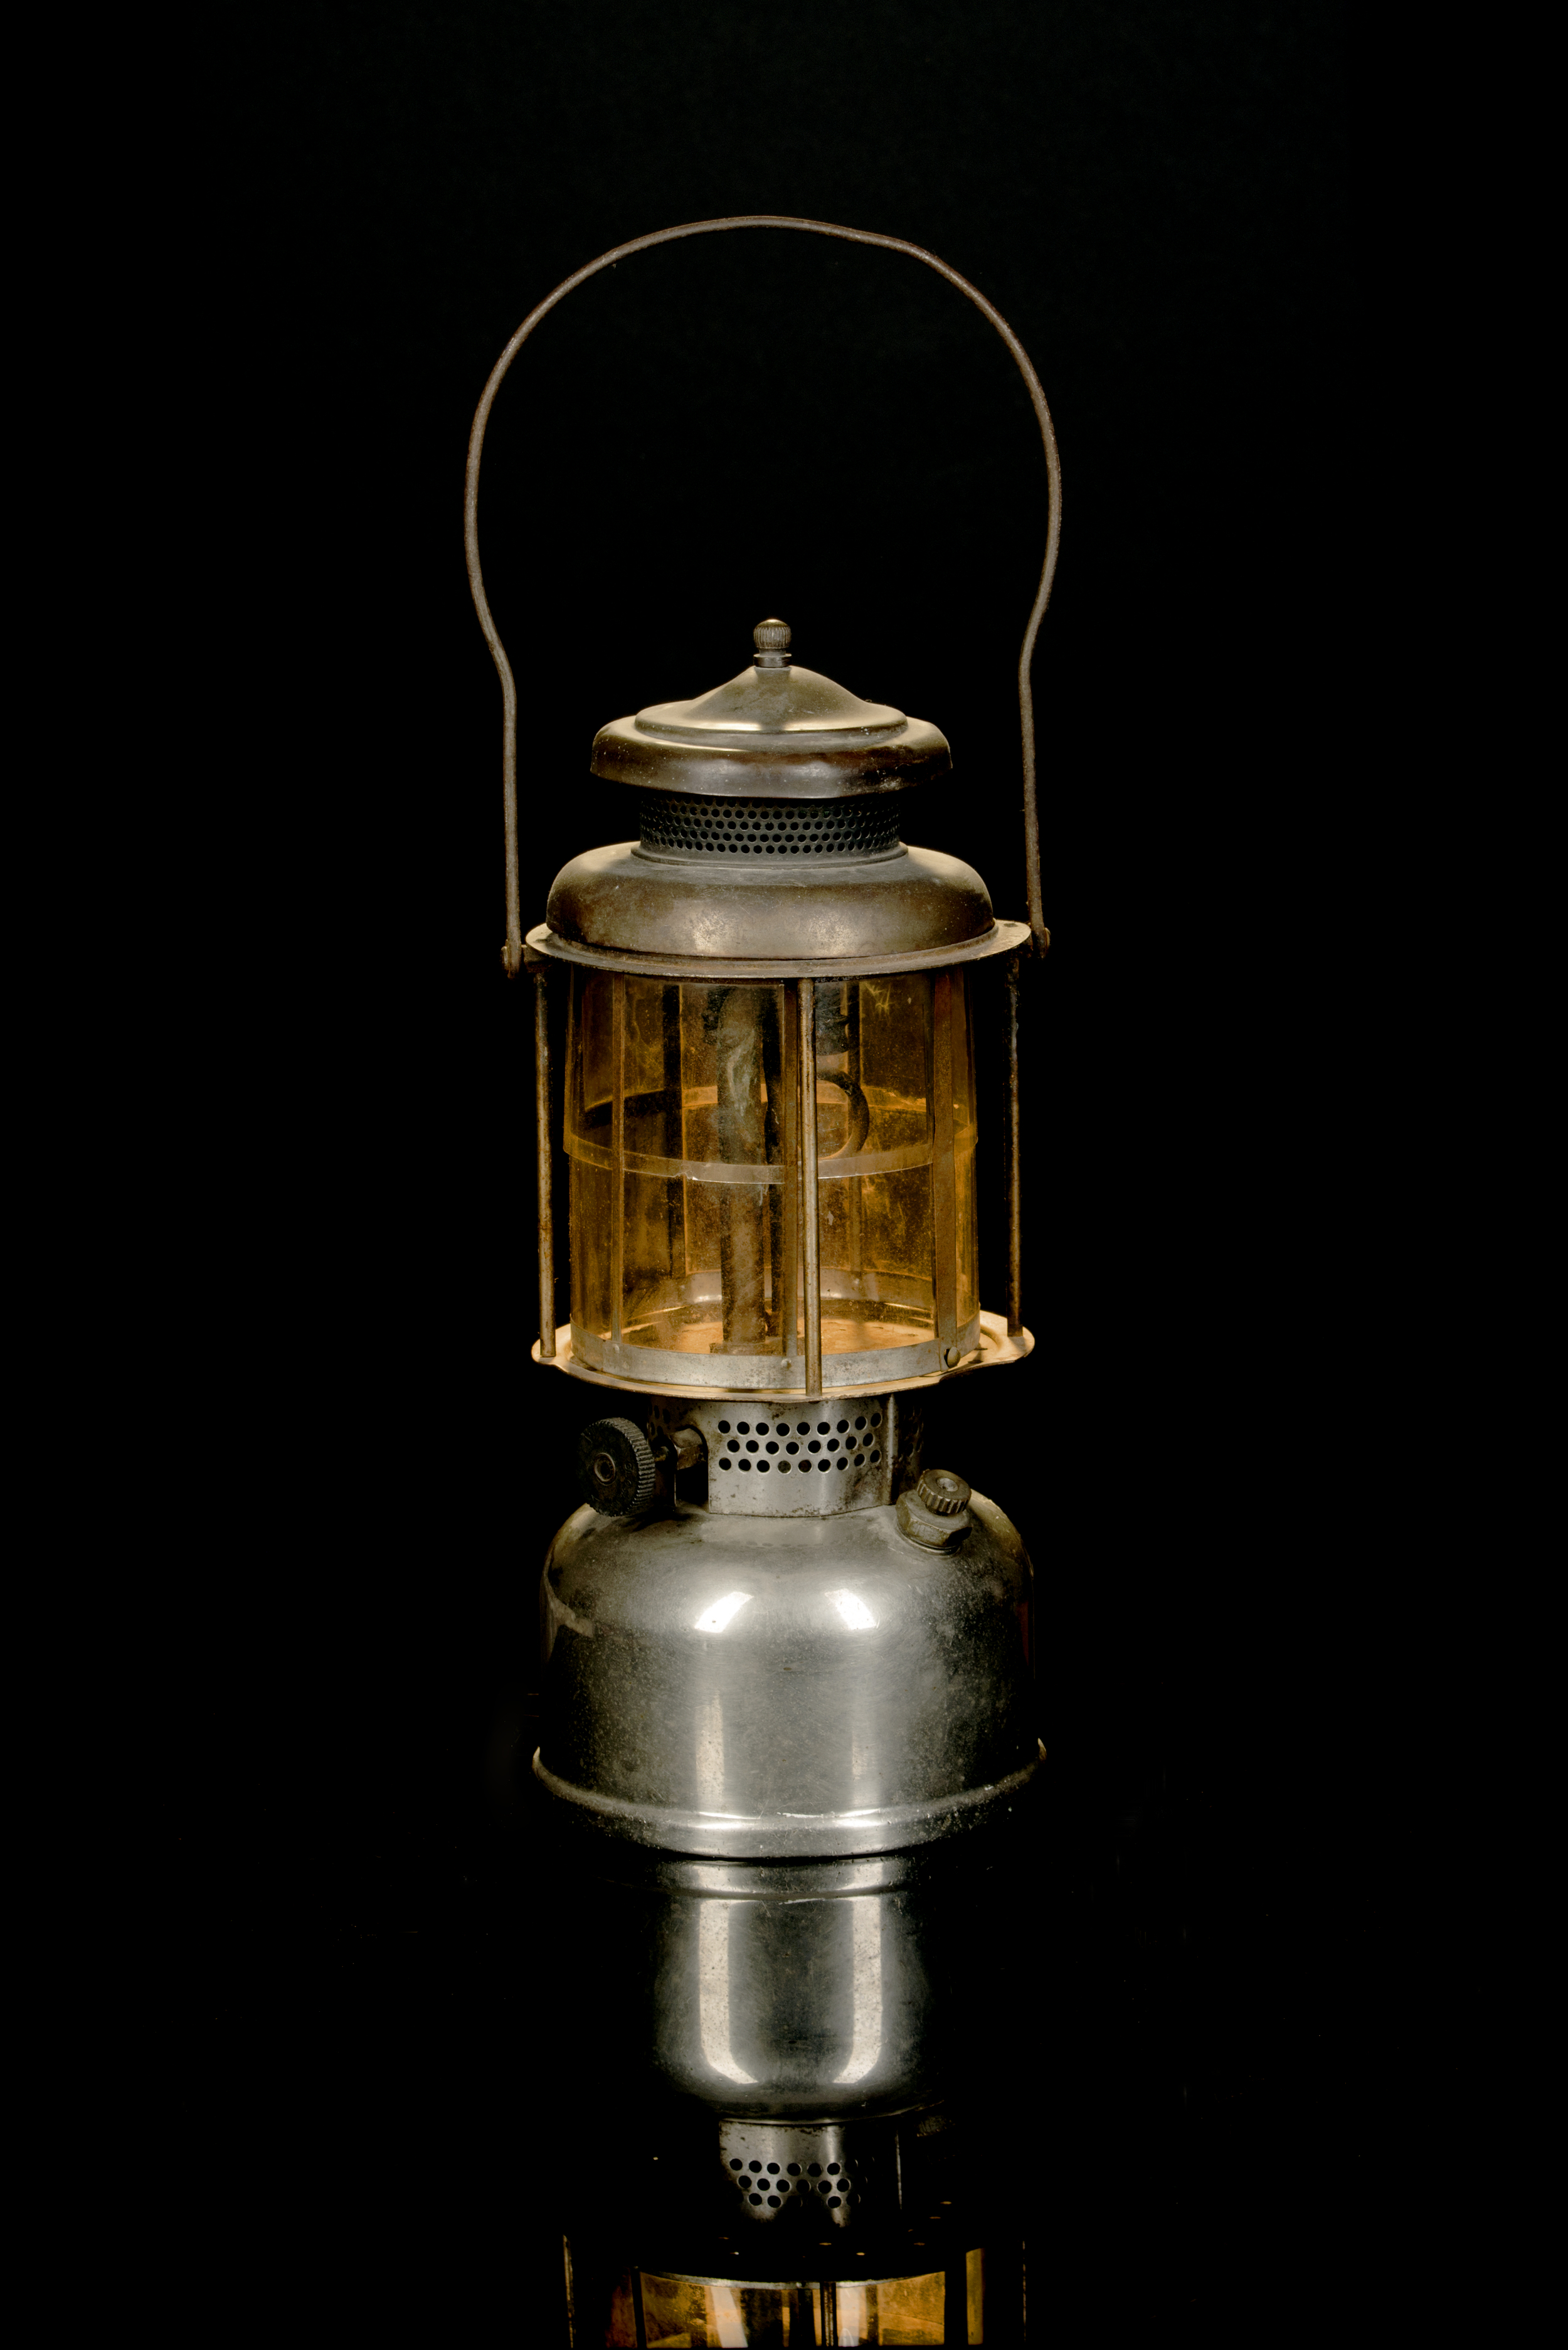 Air O Lantern Quick Light with Mica Globe, 1914-1920